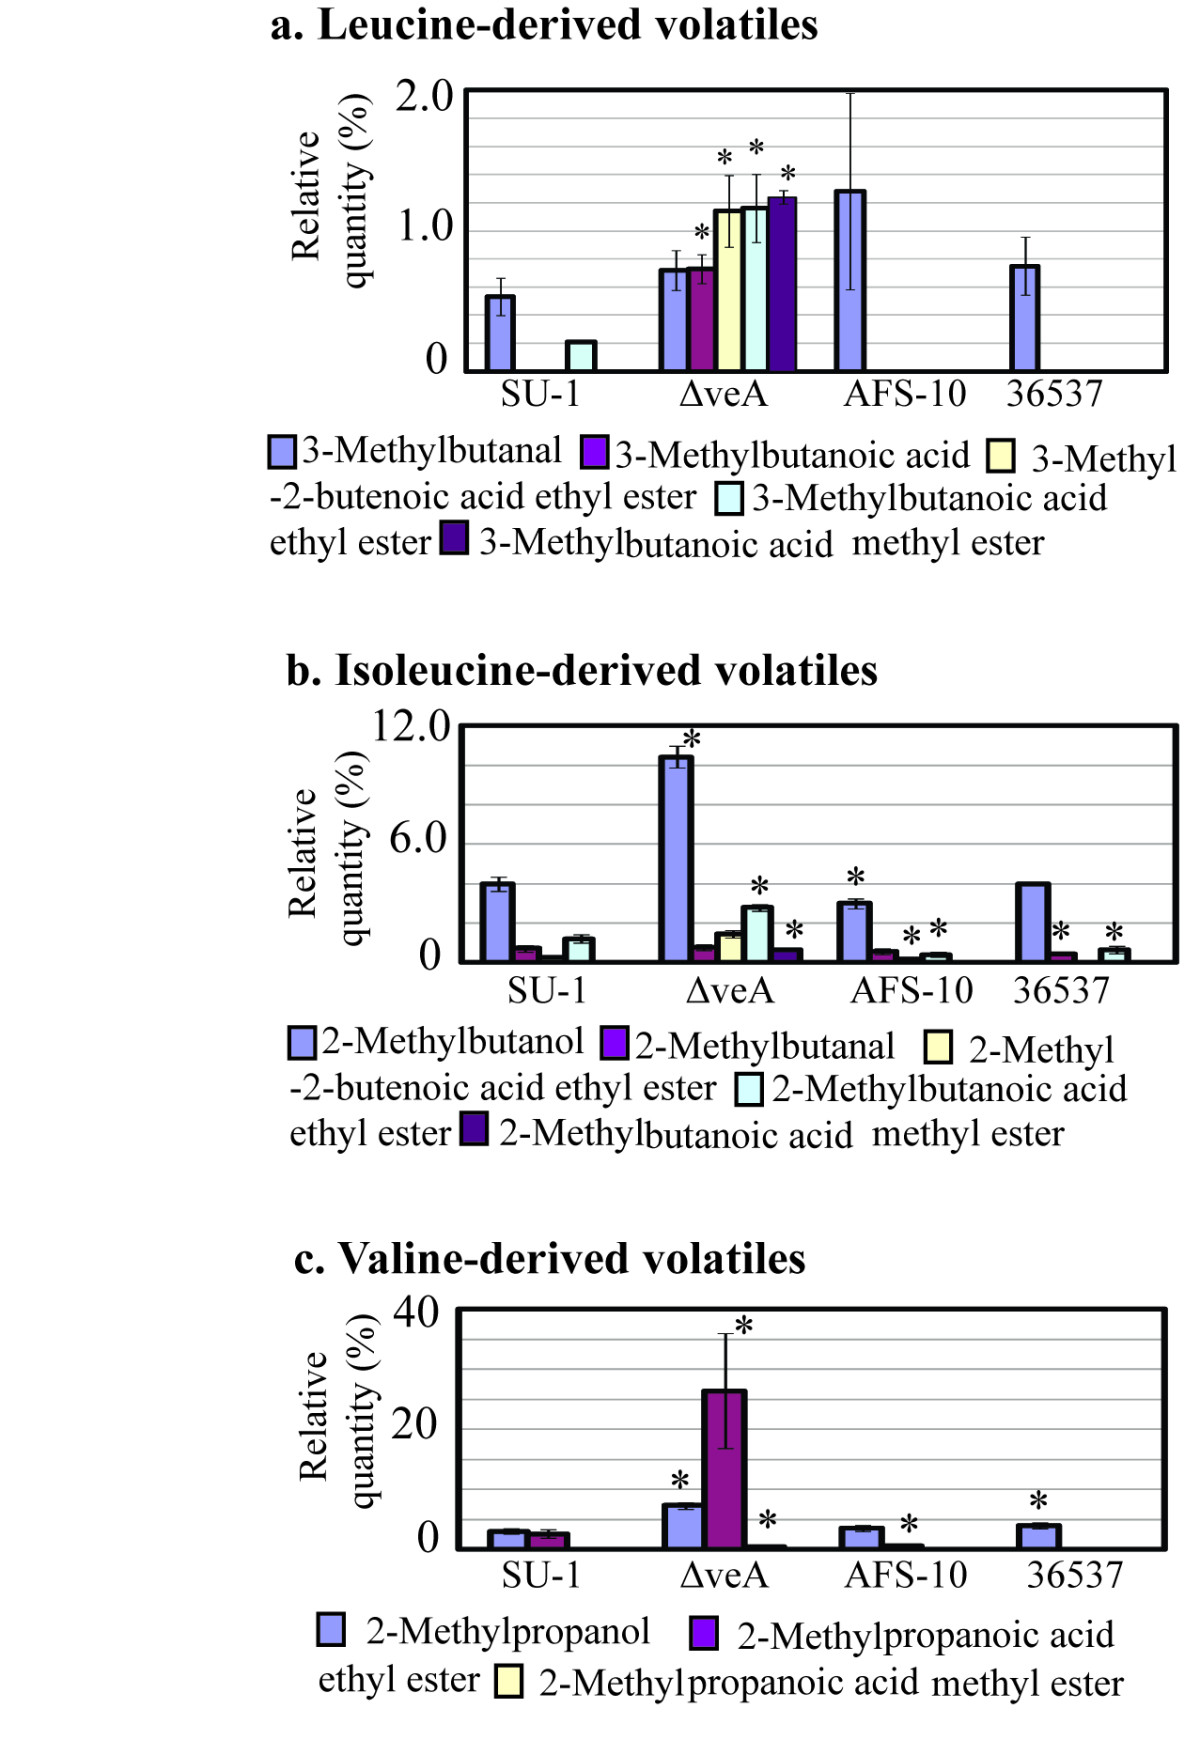 https://static-content.springer.com/image/art%3A10.1186%2F1471-2091-11-33/MediaObjects/12858_2010_Article_294_Fig1_HTML.jpg